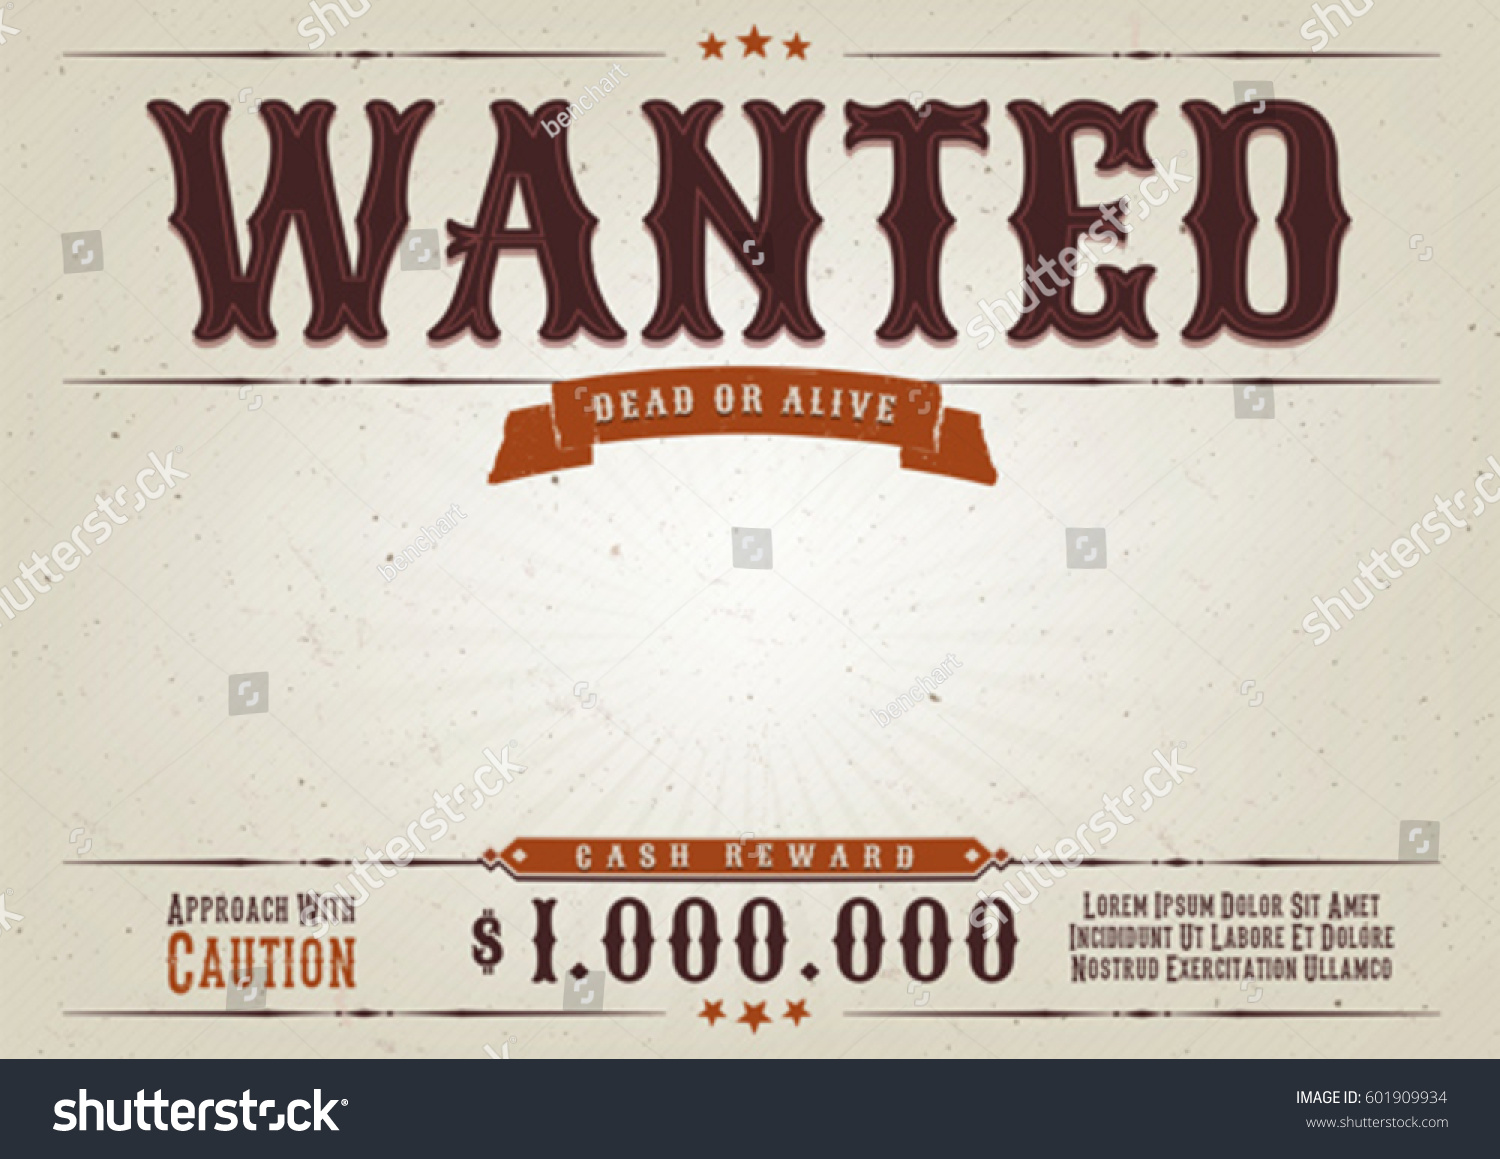 Wanted Western Movie Poster Illustration Vintage Stock Vector (2018 ...